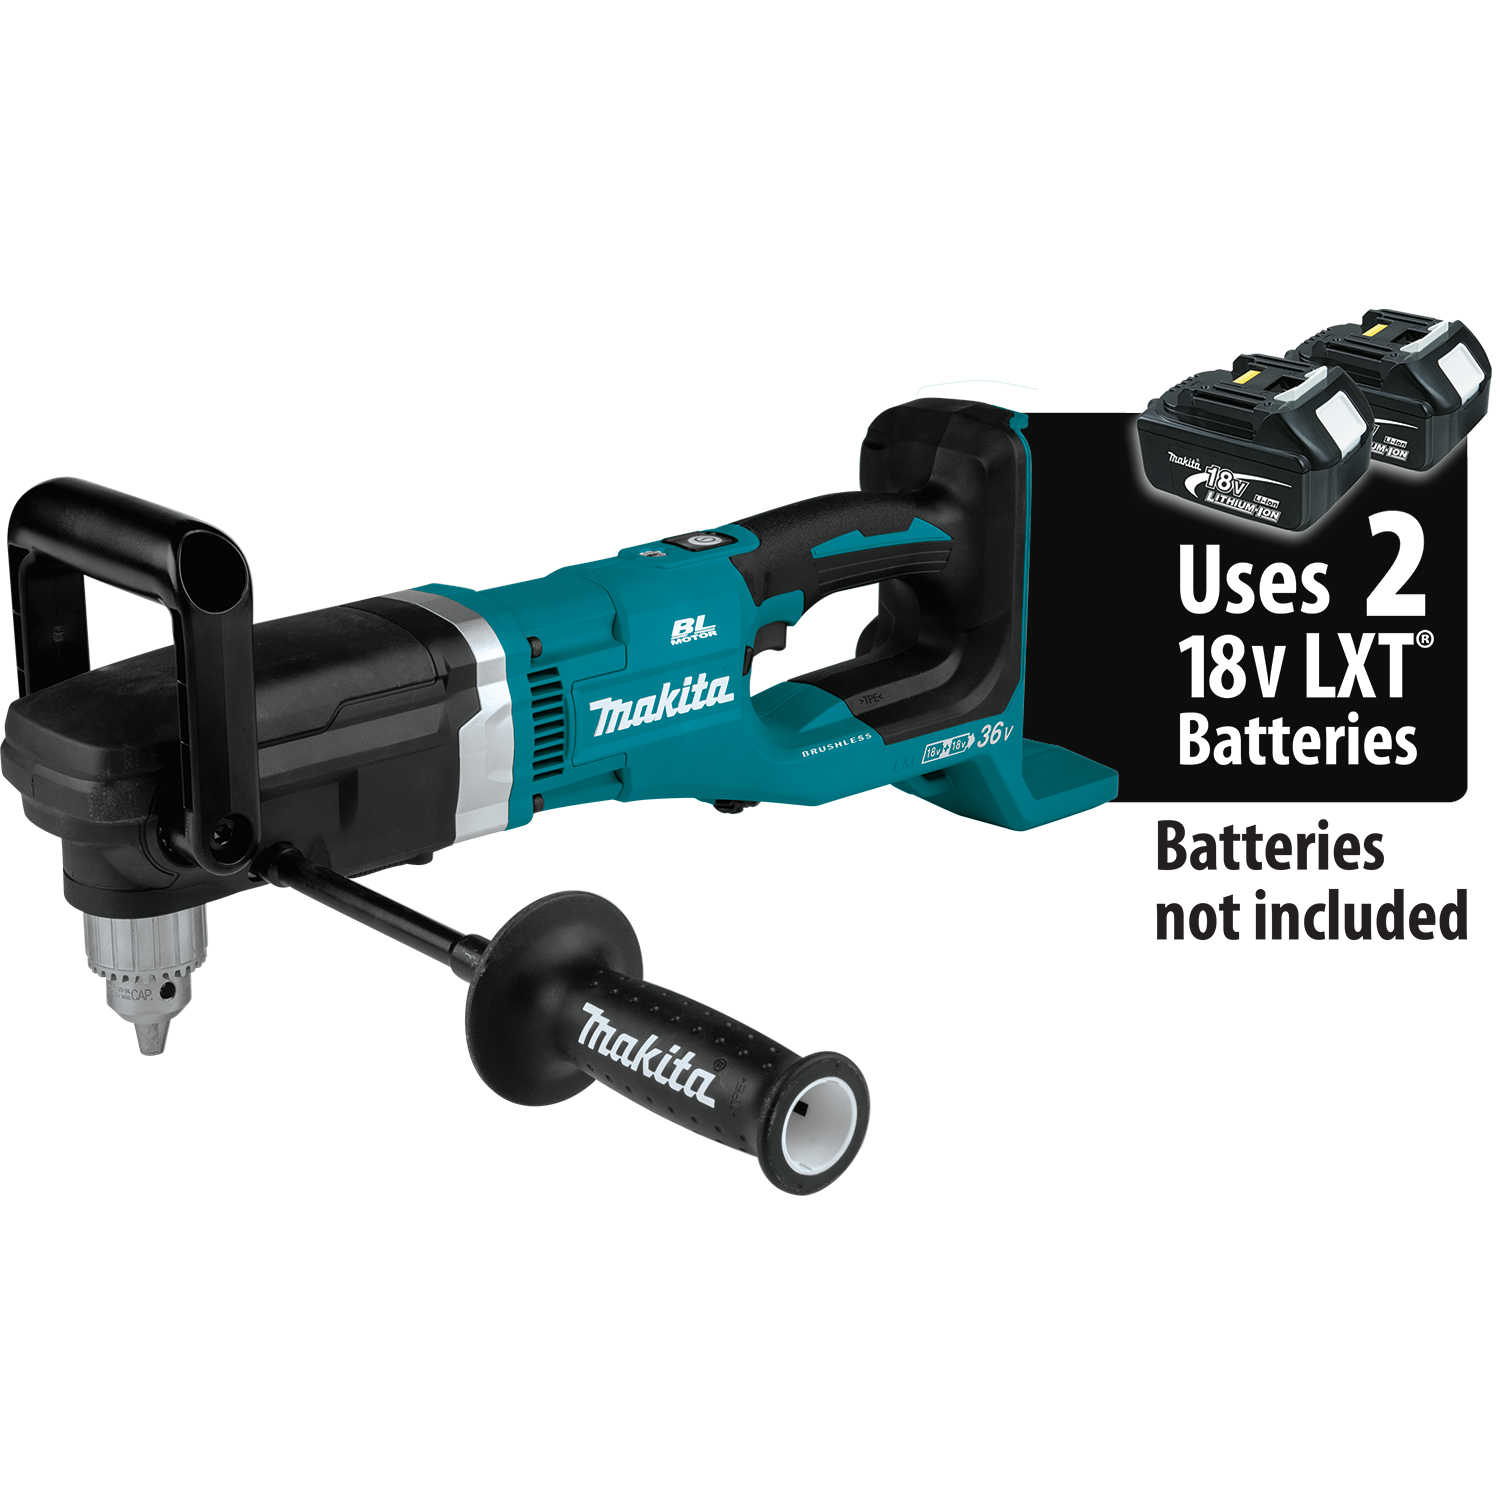 Makita Usa Product Details Xad03z